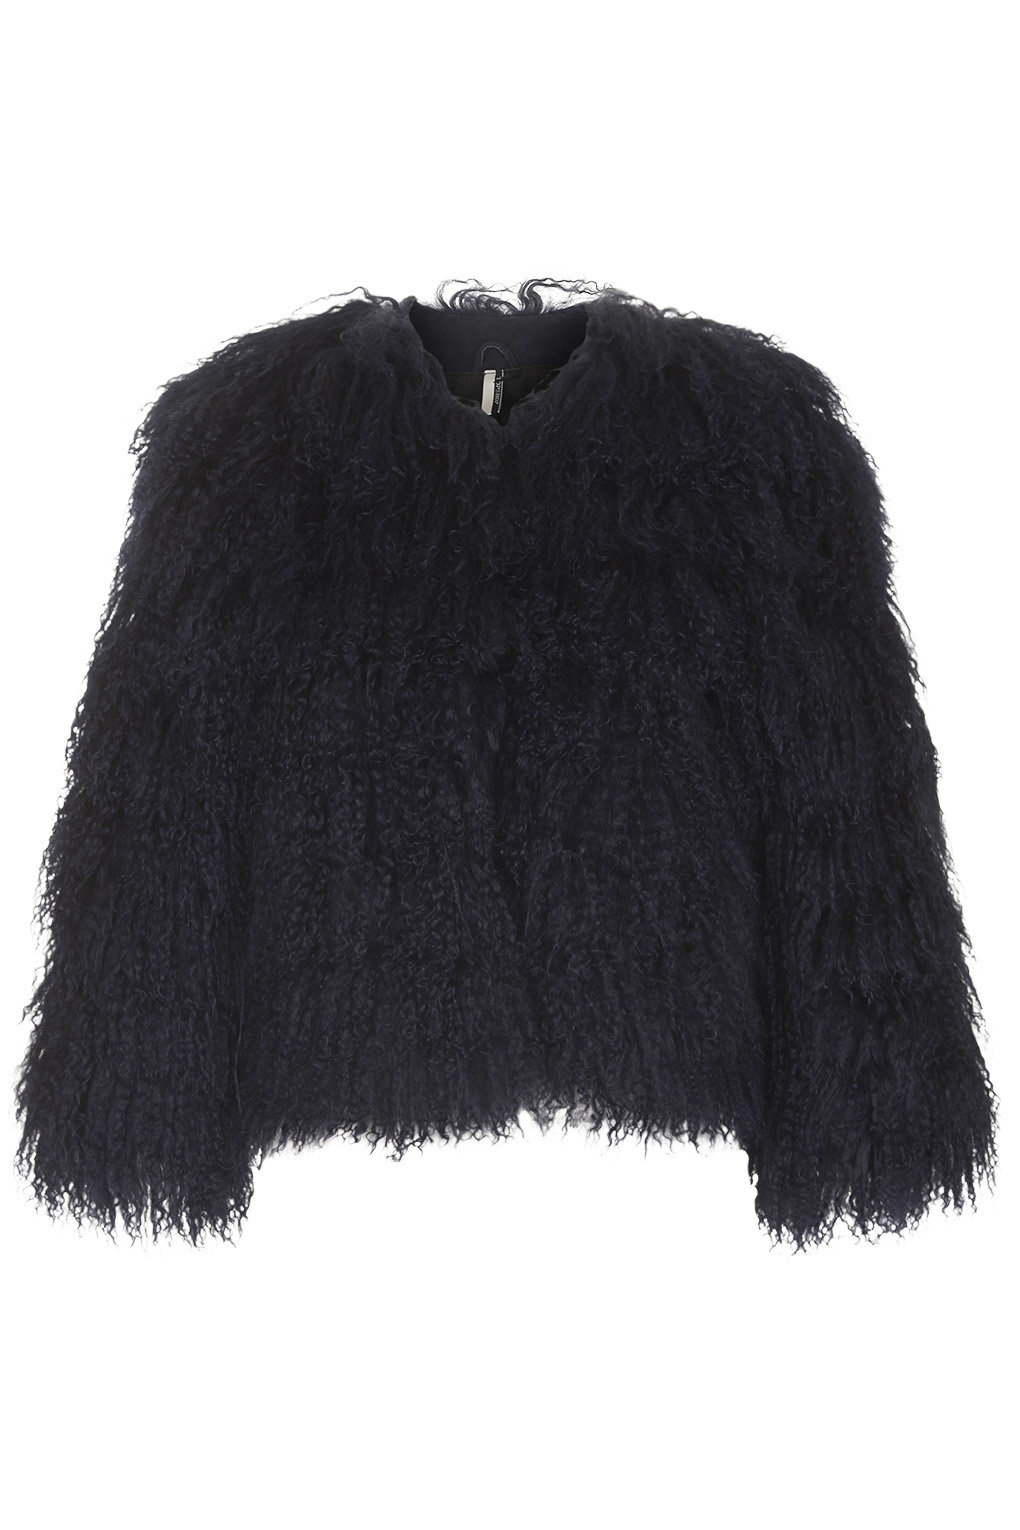 **mongolian sheepskin jacket